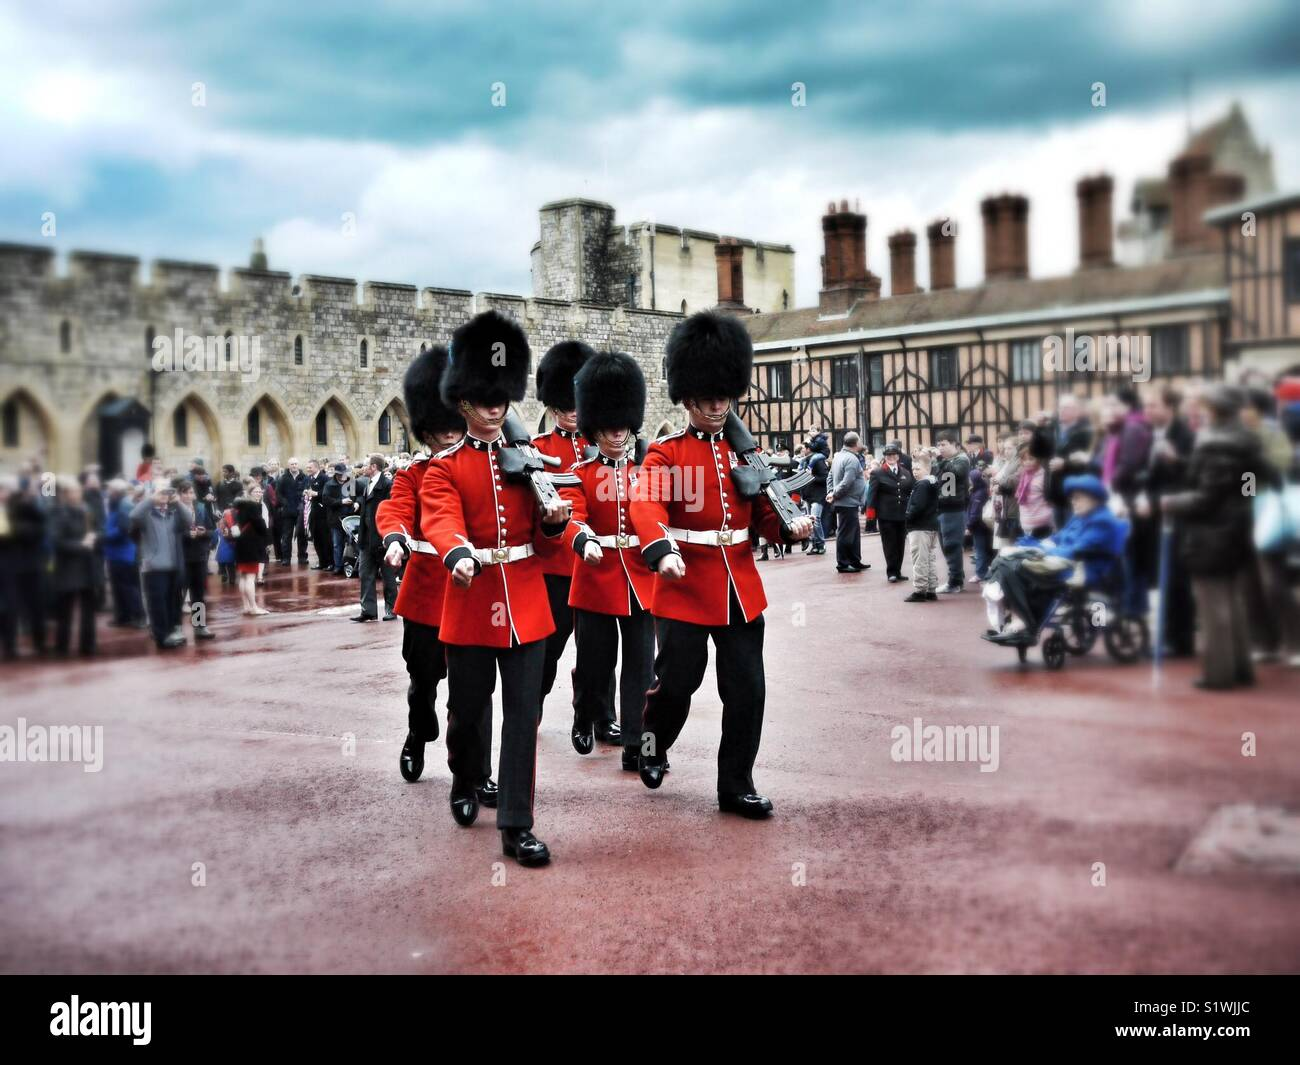 Changing of the guard at Windsor Castle Stock Photo